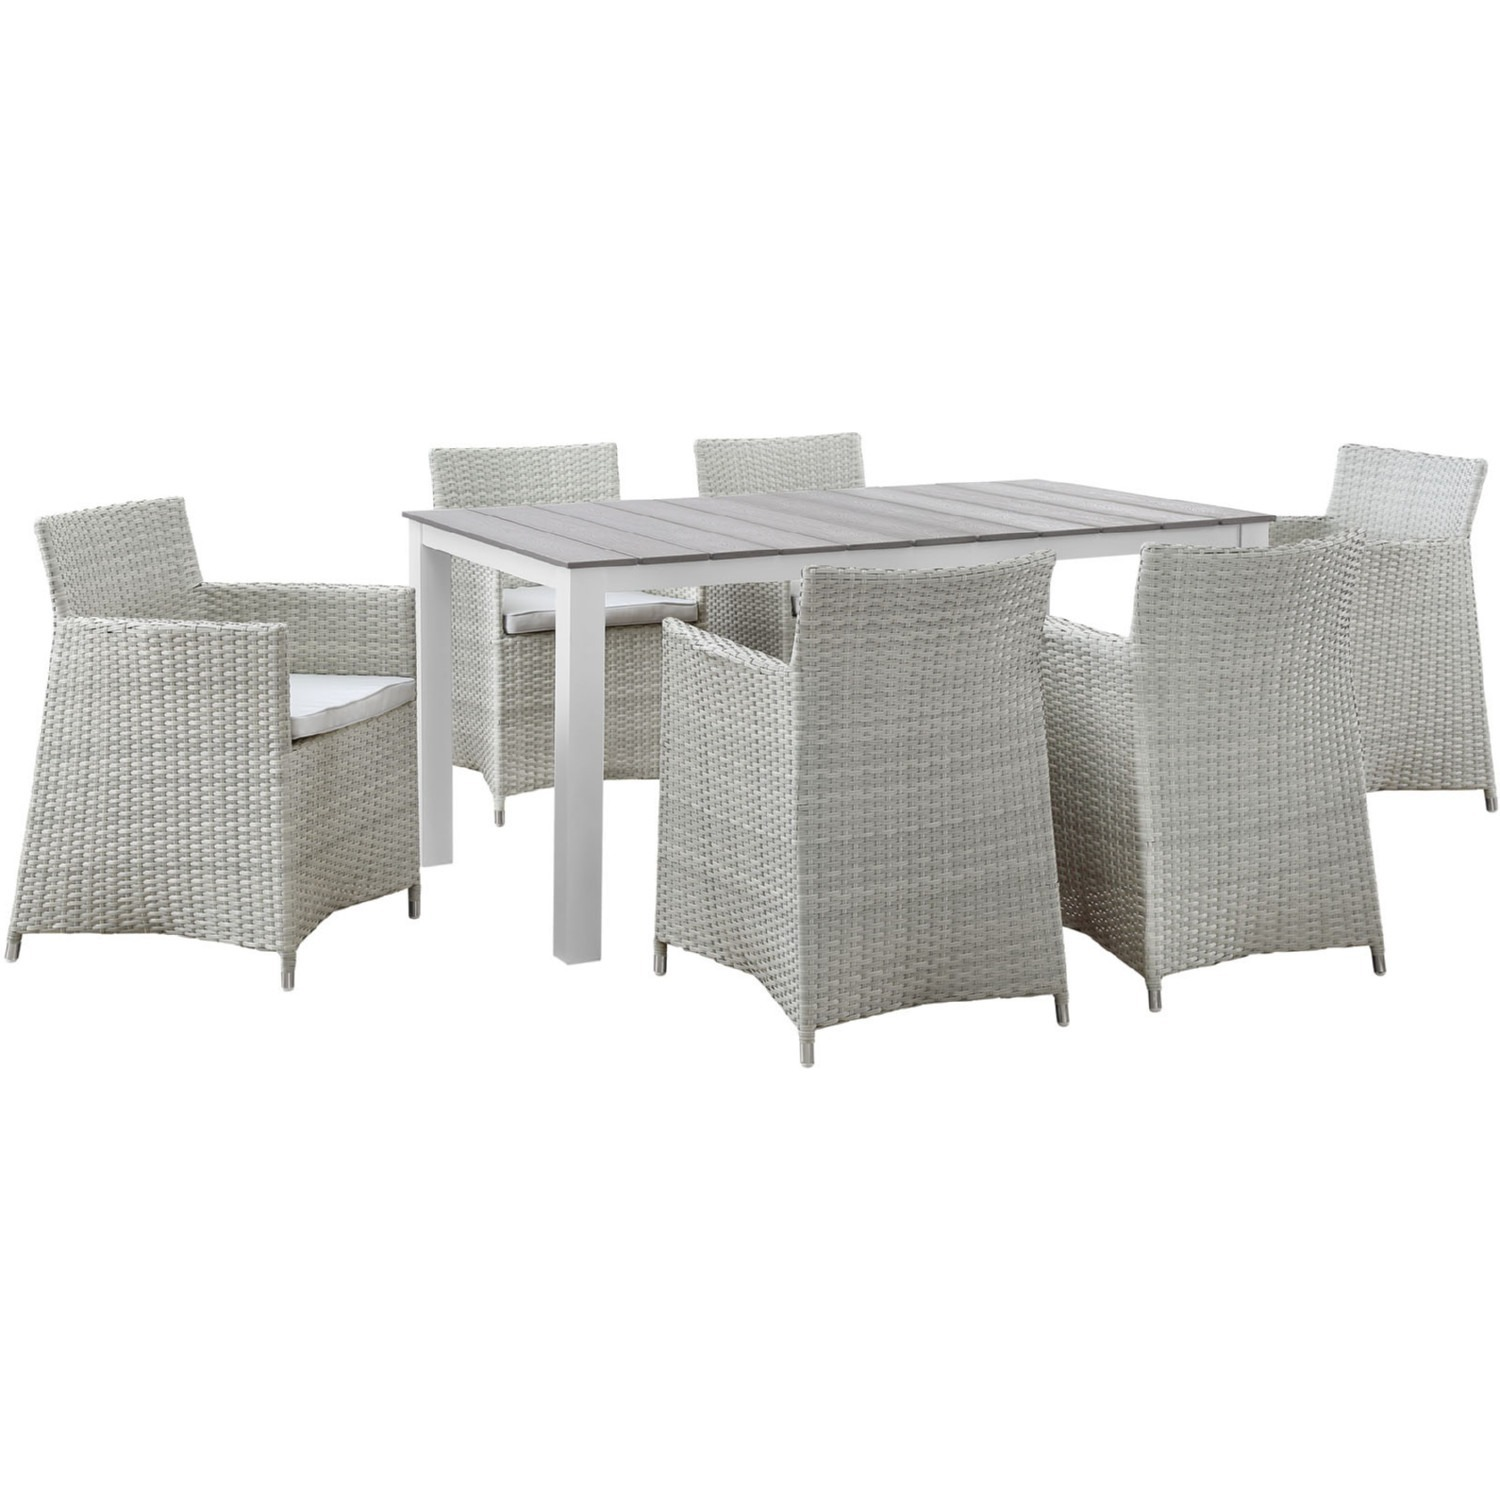 7-Piece Dining Set In Gray Rattan Weave Finish - image-0